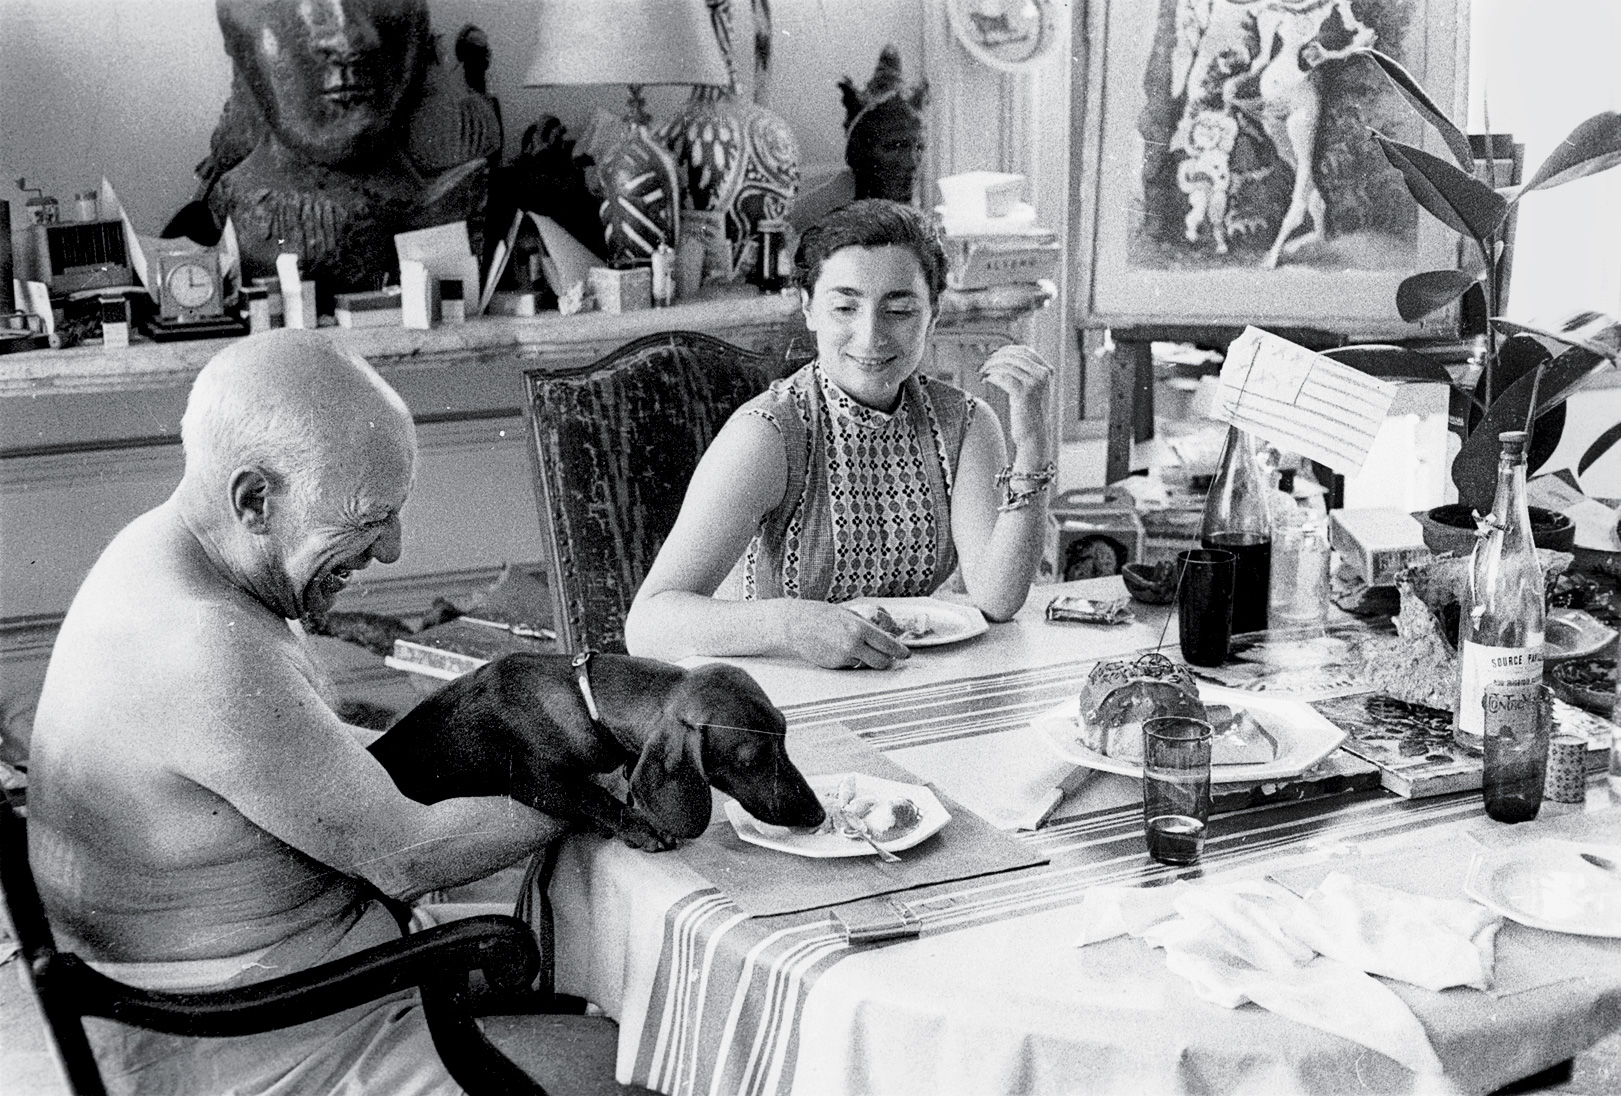 Picasso and Jacqueline in 1957